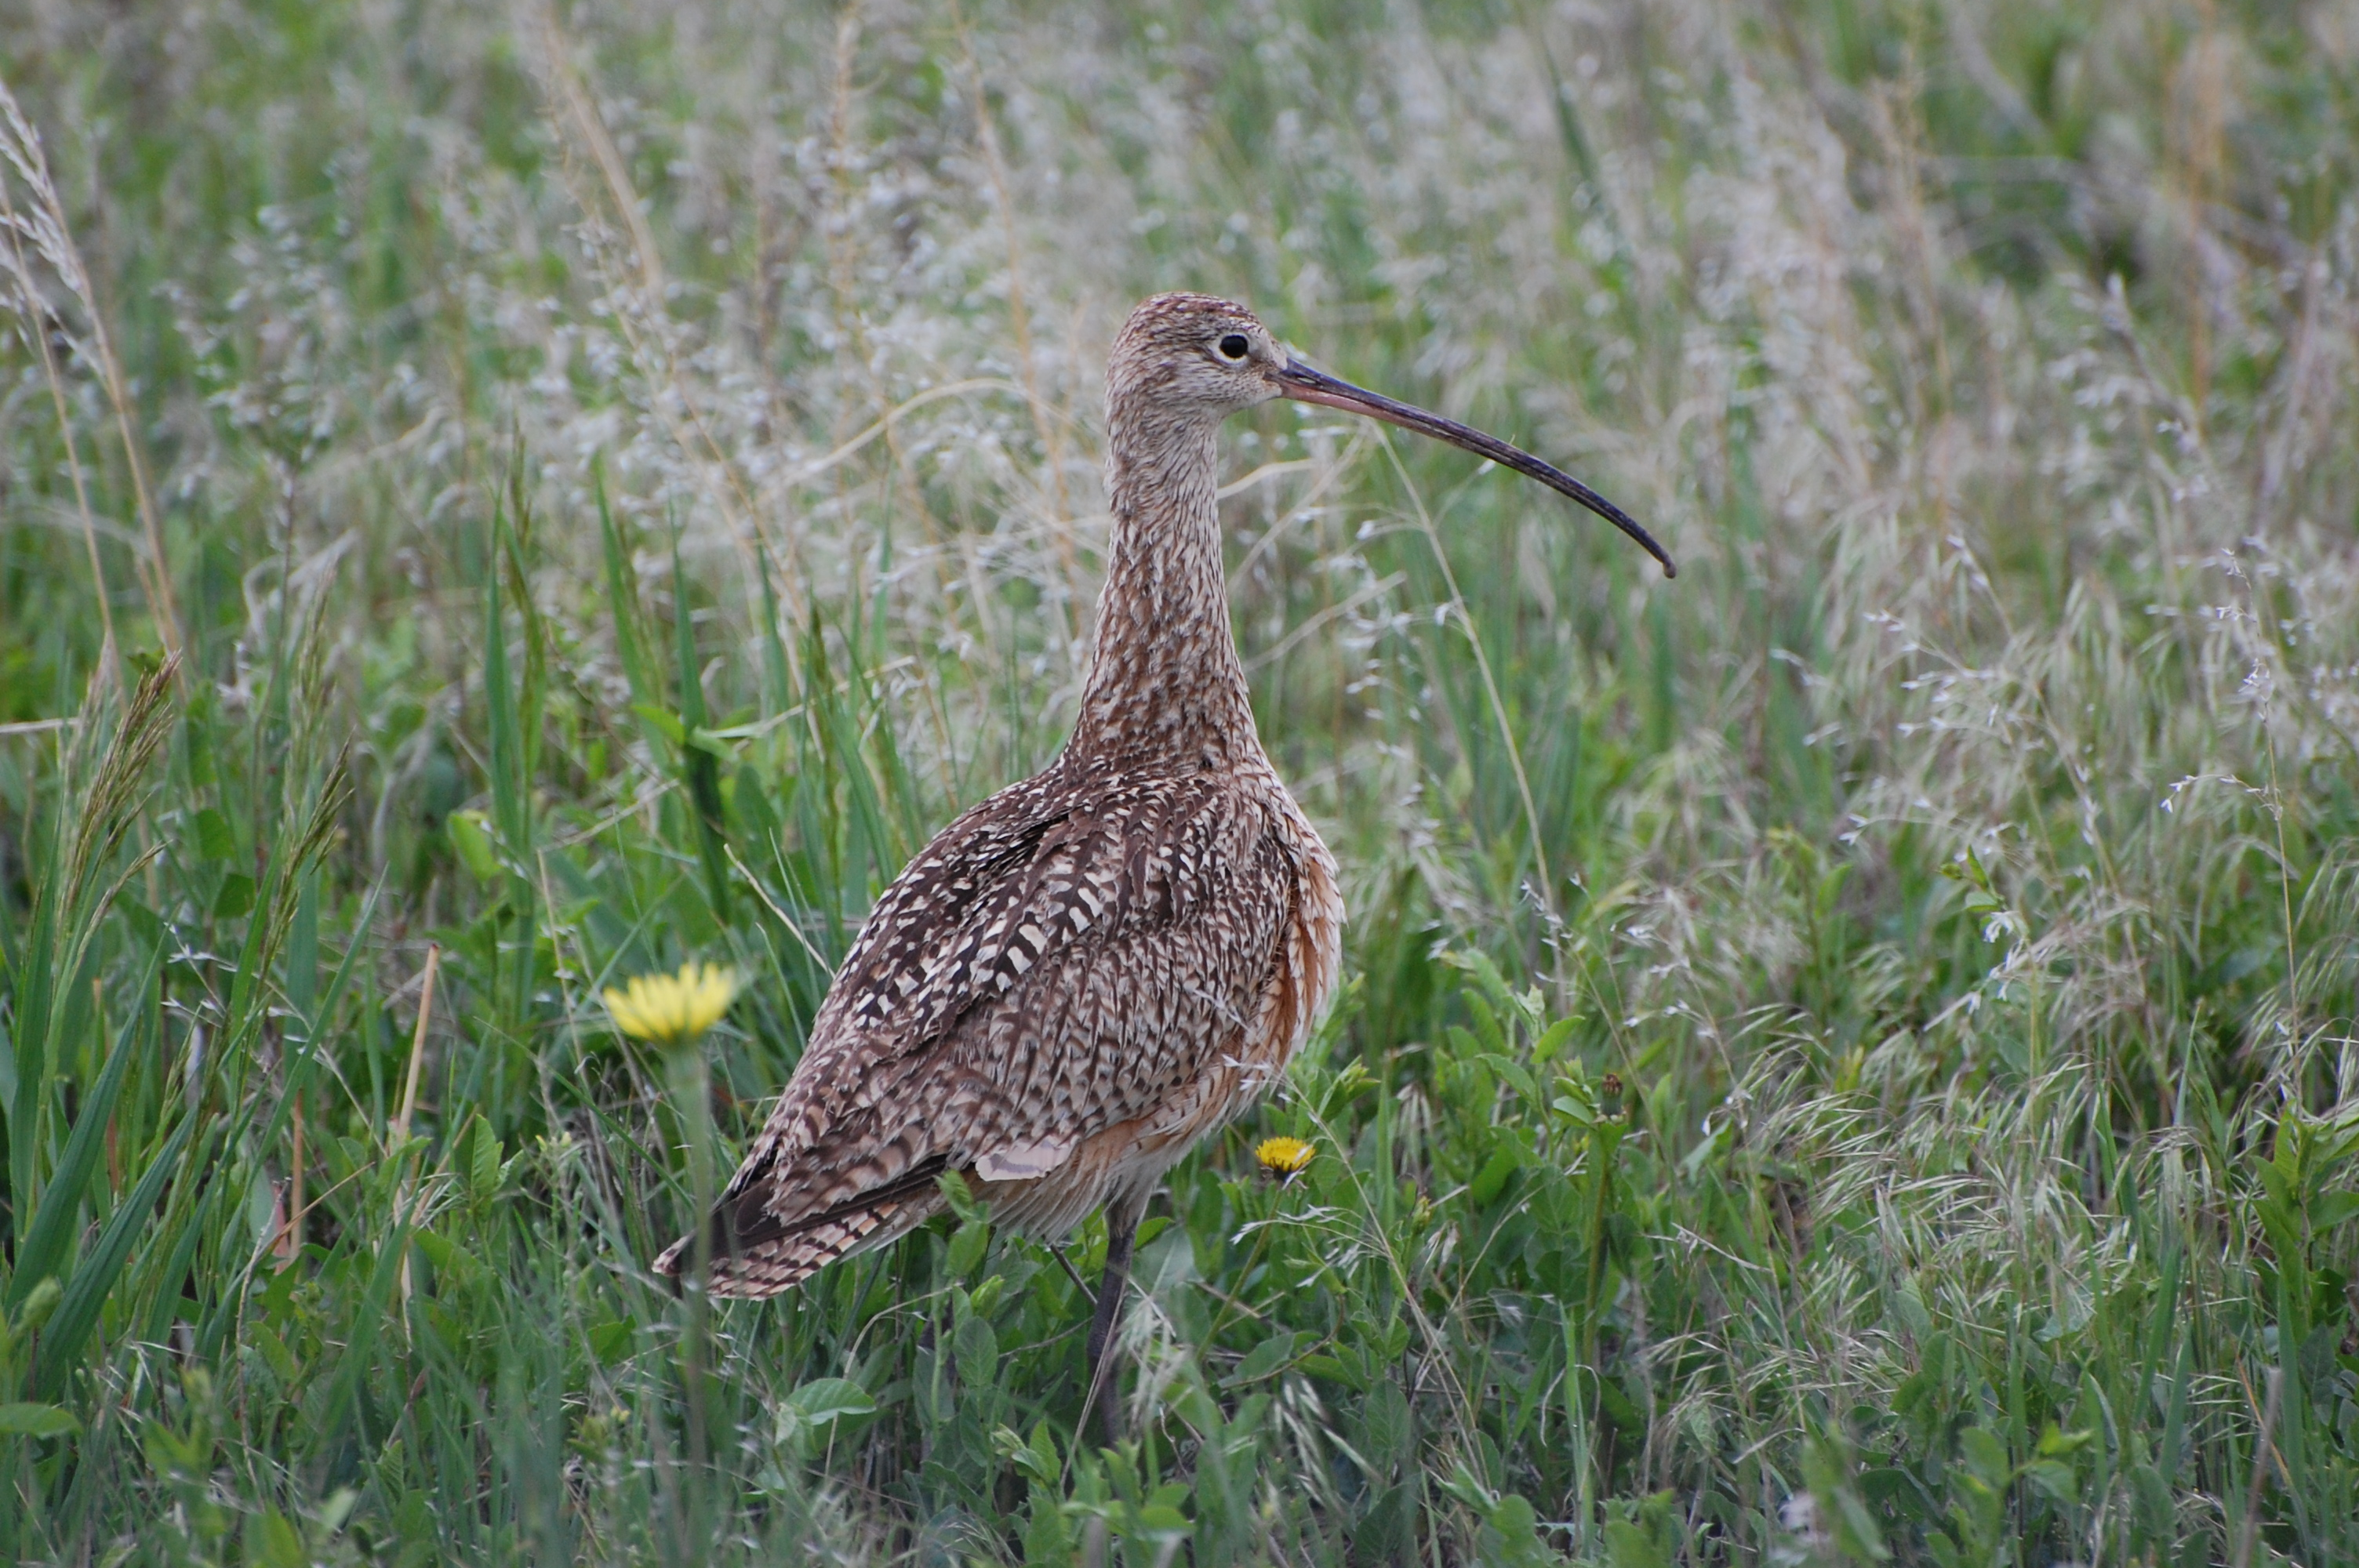 Curlew by Linda Milam